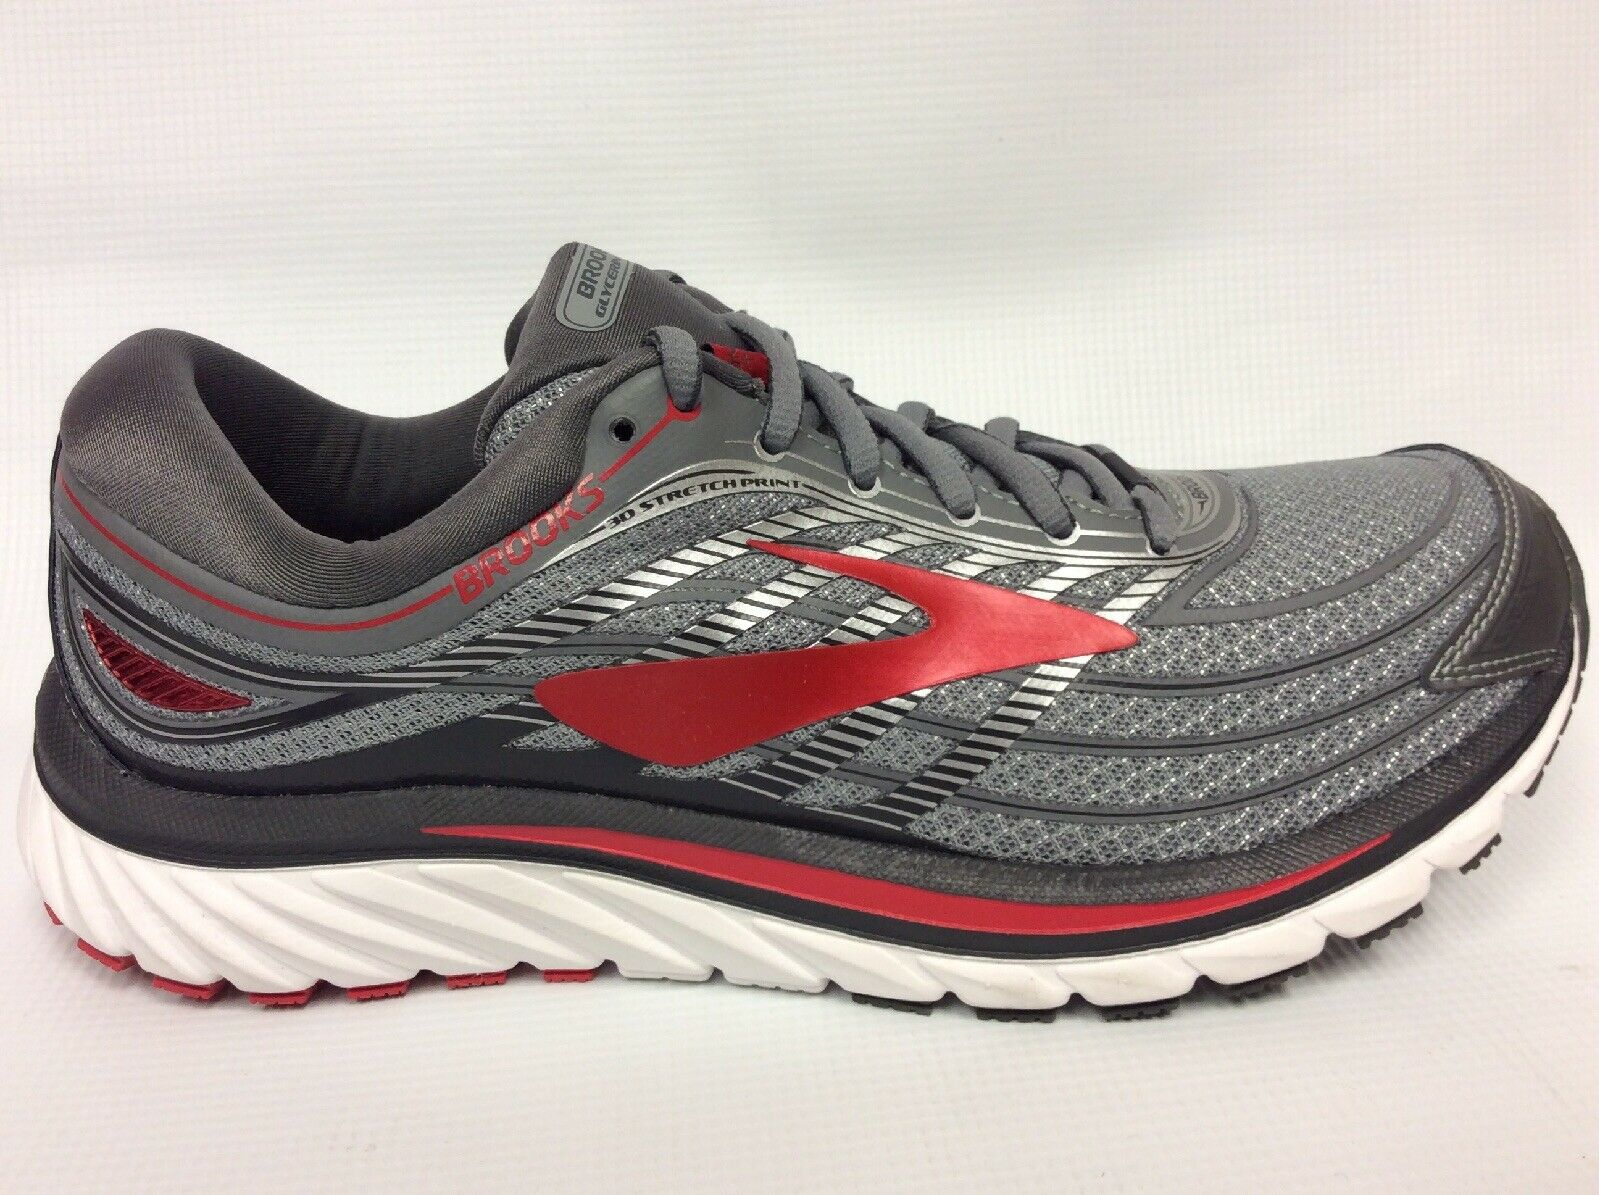 Brooks Glycerin 15 Running shoes Mens Size 8 D 110258-023 Grey Red NEW